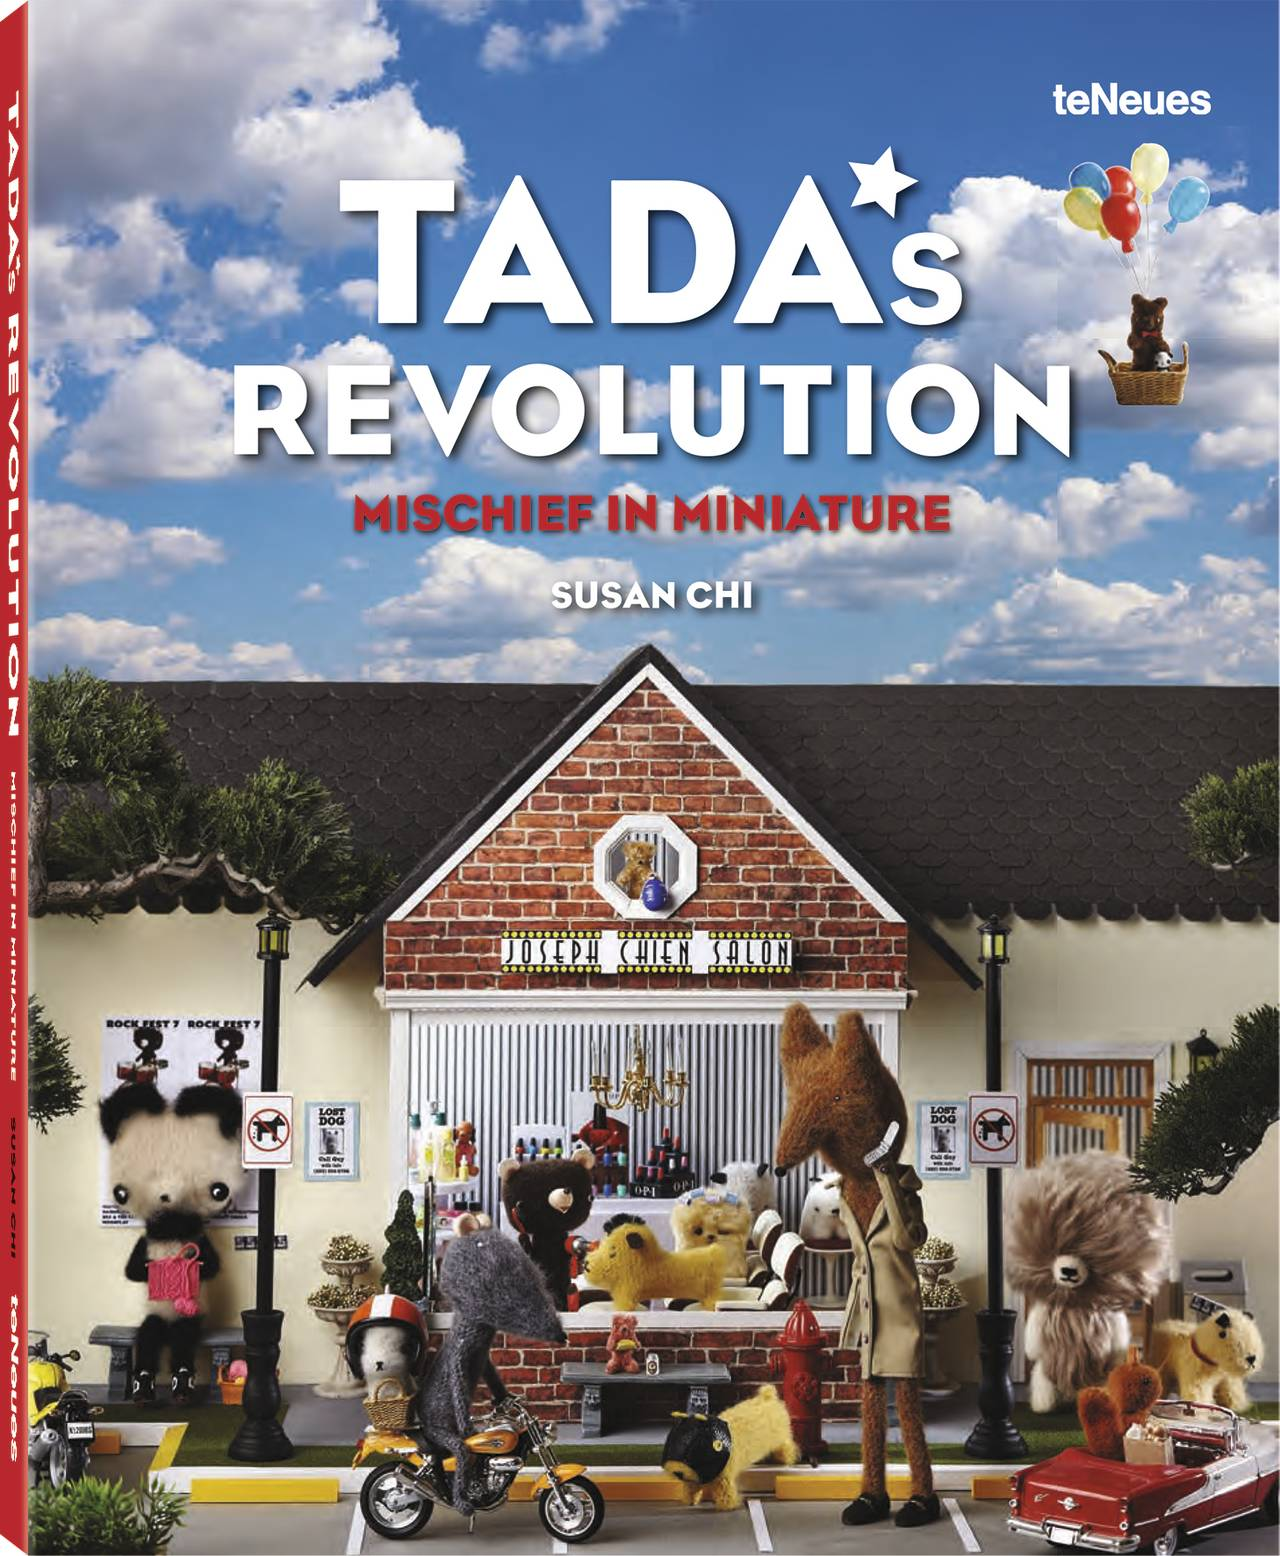 © TADA'S REVOLUTION - Mischief in Miniature by Susan Chi, published by teNeues, www.teneues.com. Photo © 2016 Susan Chi and Nicholas Nguyen. All rights reserved. www.tadasrevolution.com